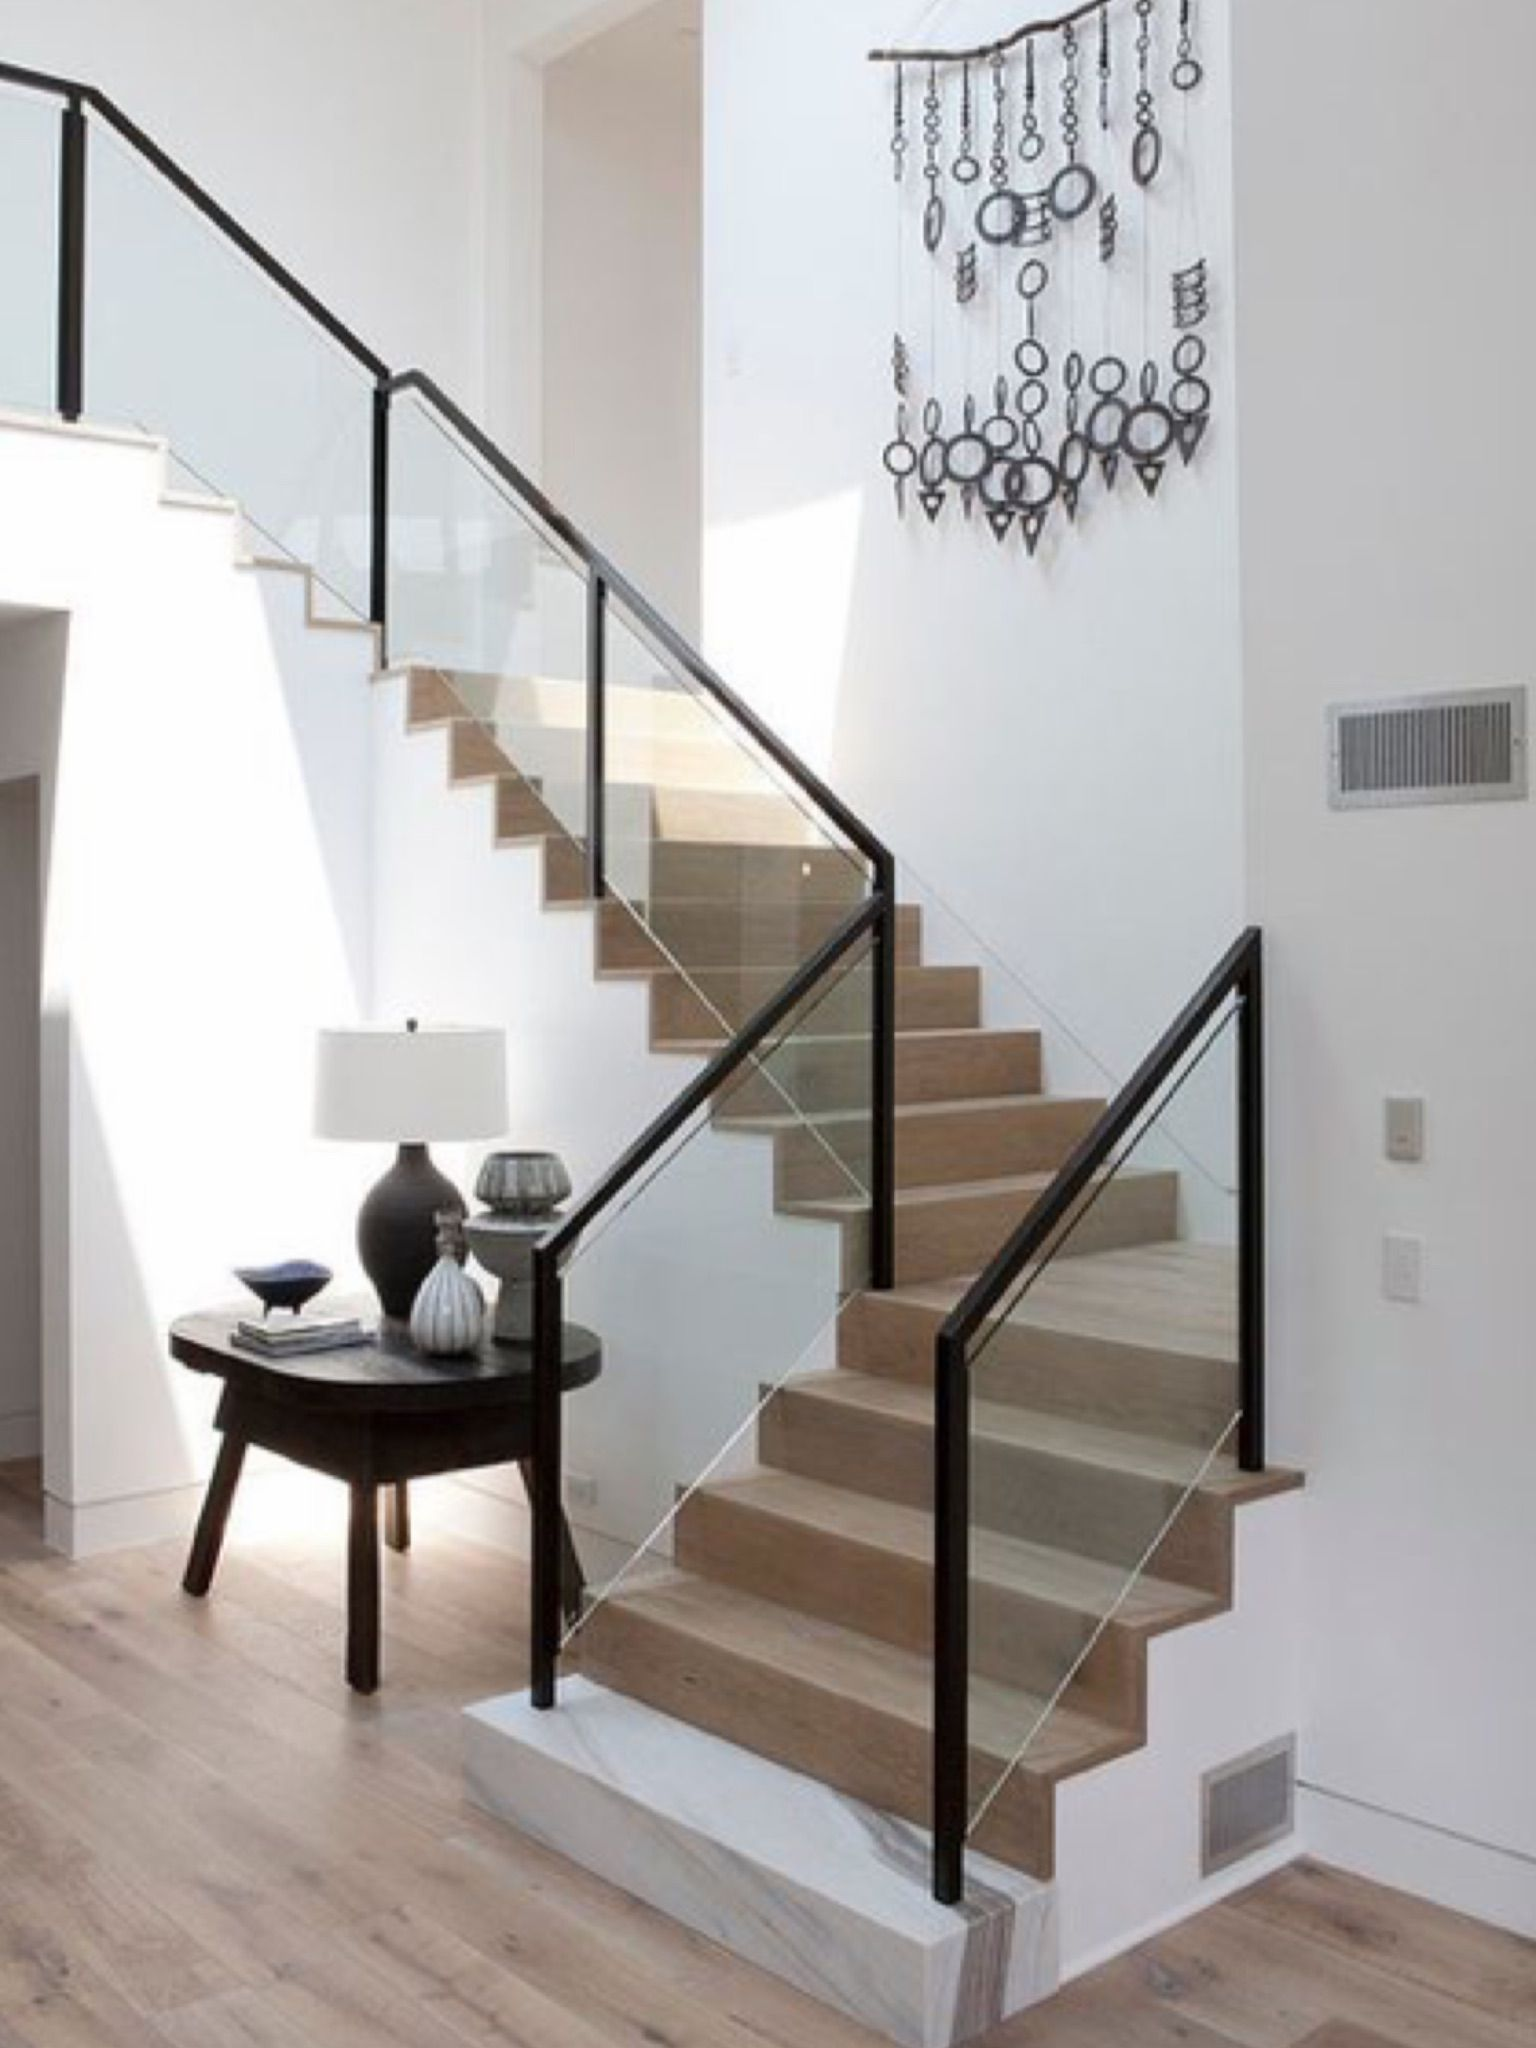 Best Pin By Justyna Grzywacz On Split House Interior Stairs 400 x 300